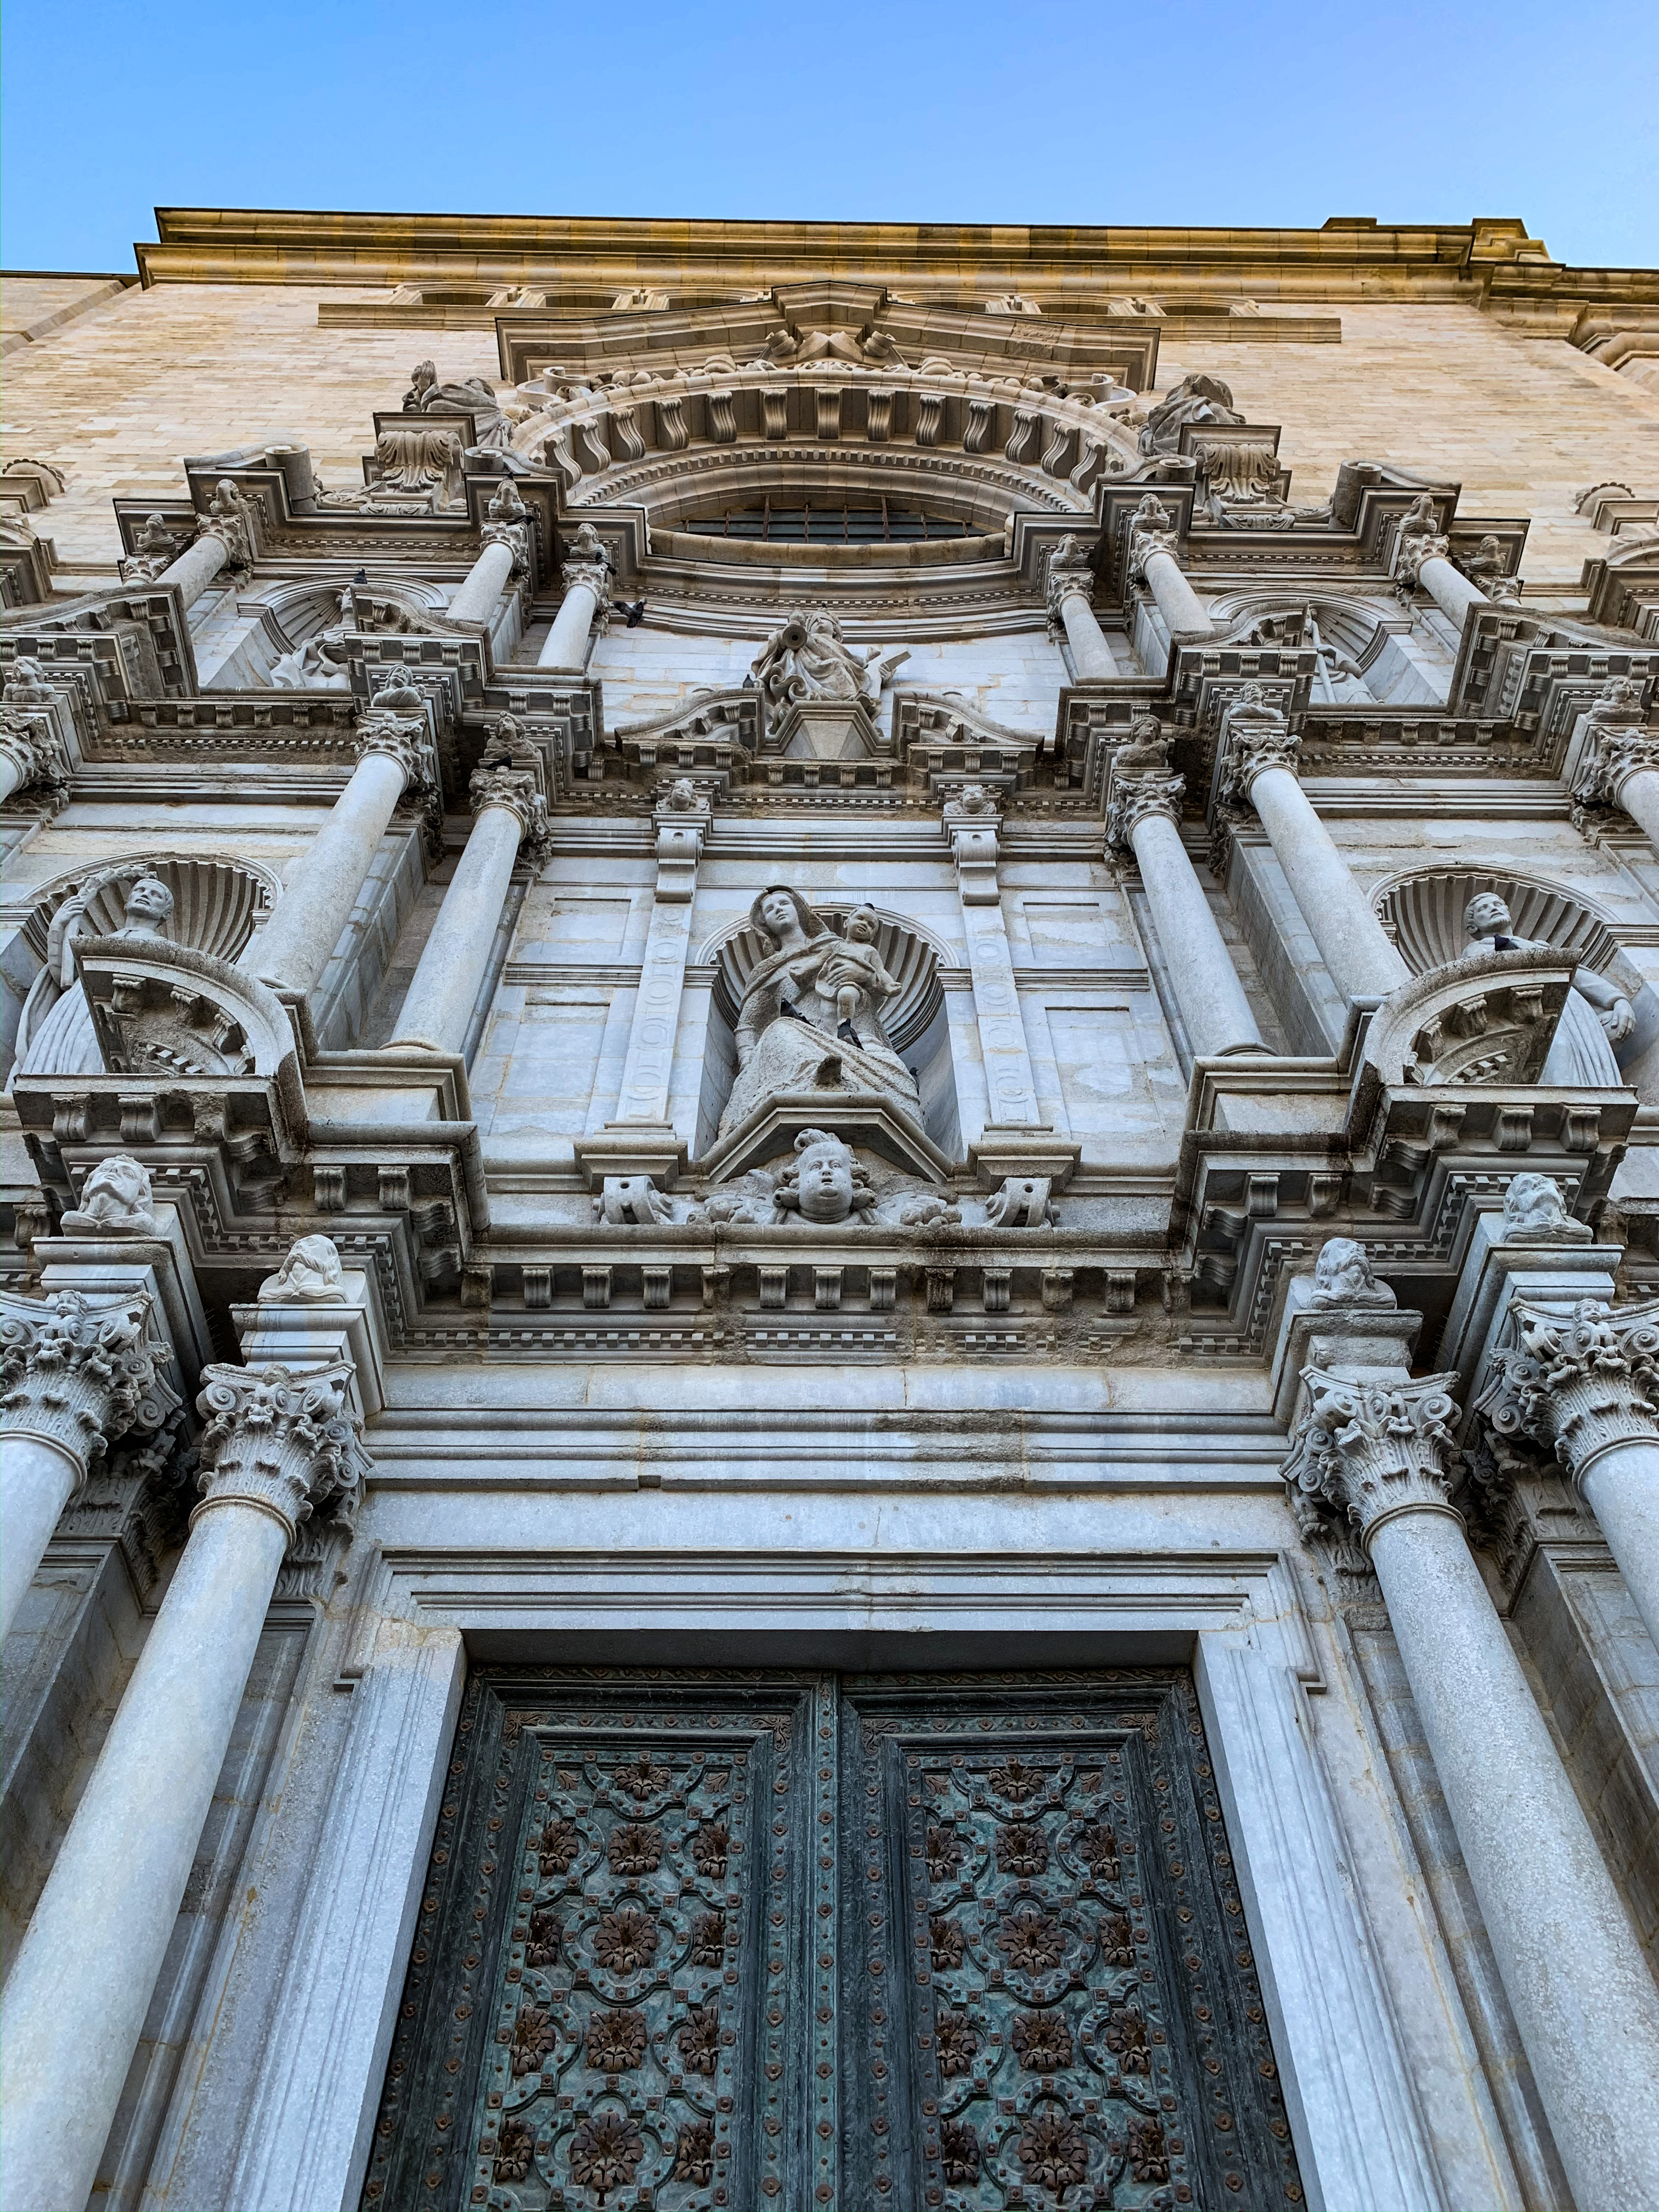 A close-up view of Girona Cathedral looking upwards. The building is tall with carvings of angels, saints, and other holy icons.